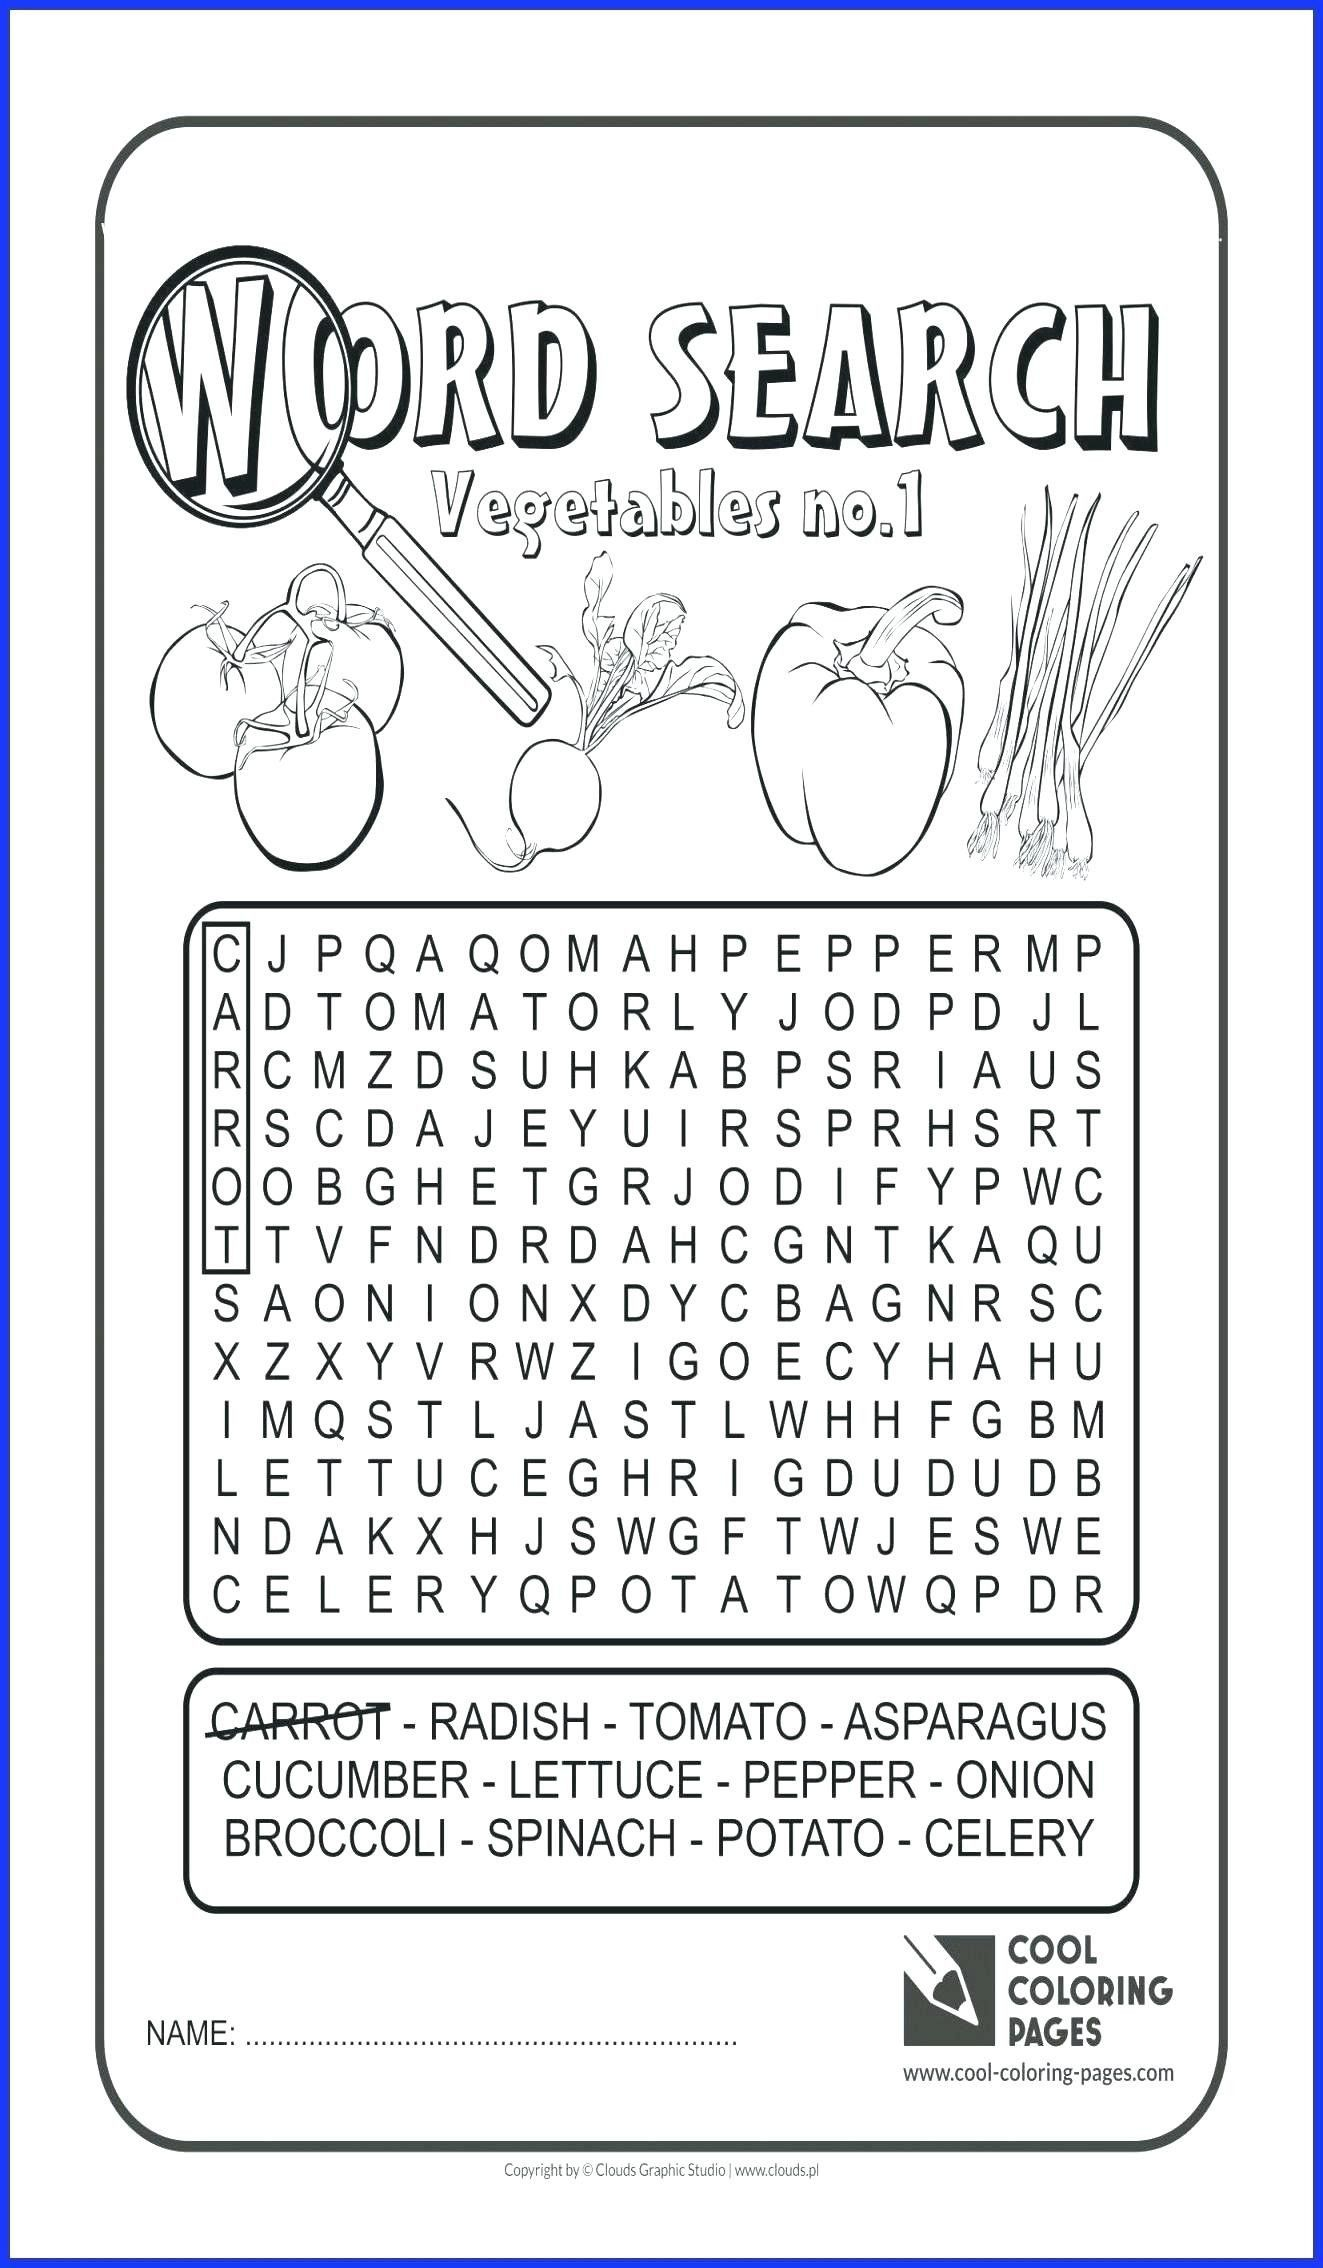 5 Fun Math Worksheet 3rd Grade 3rd Fun Grade Math